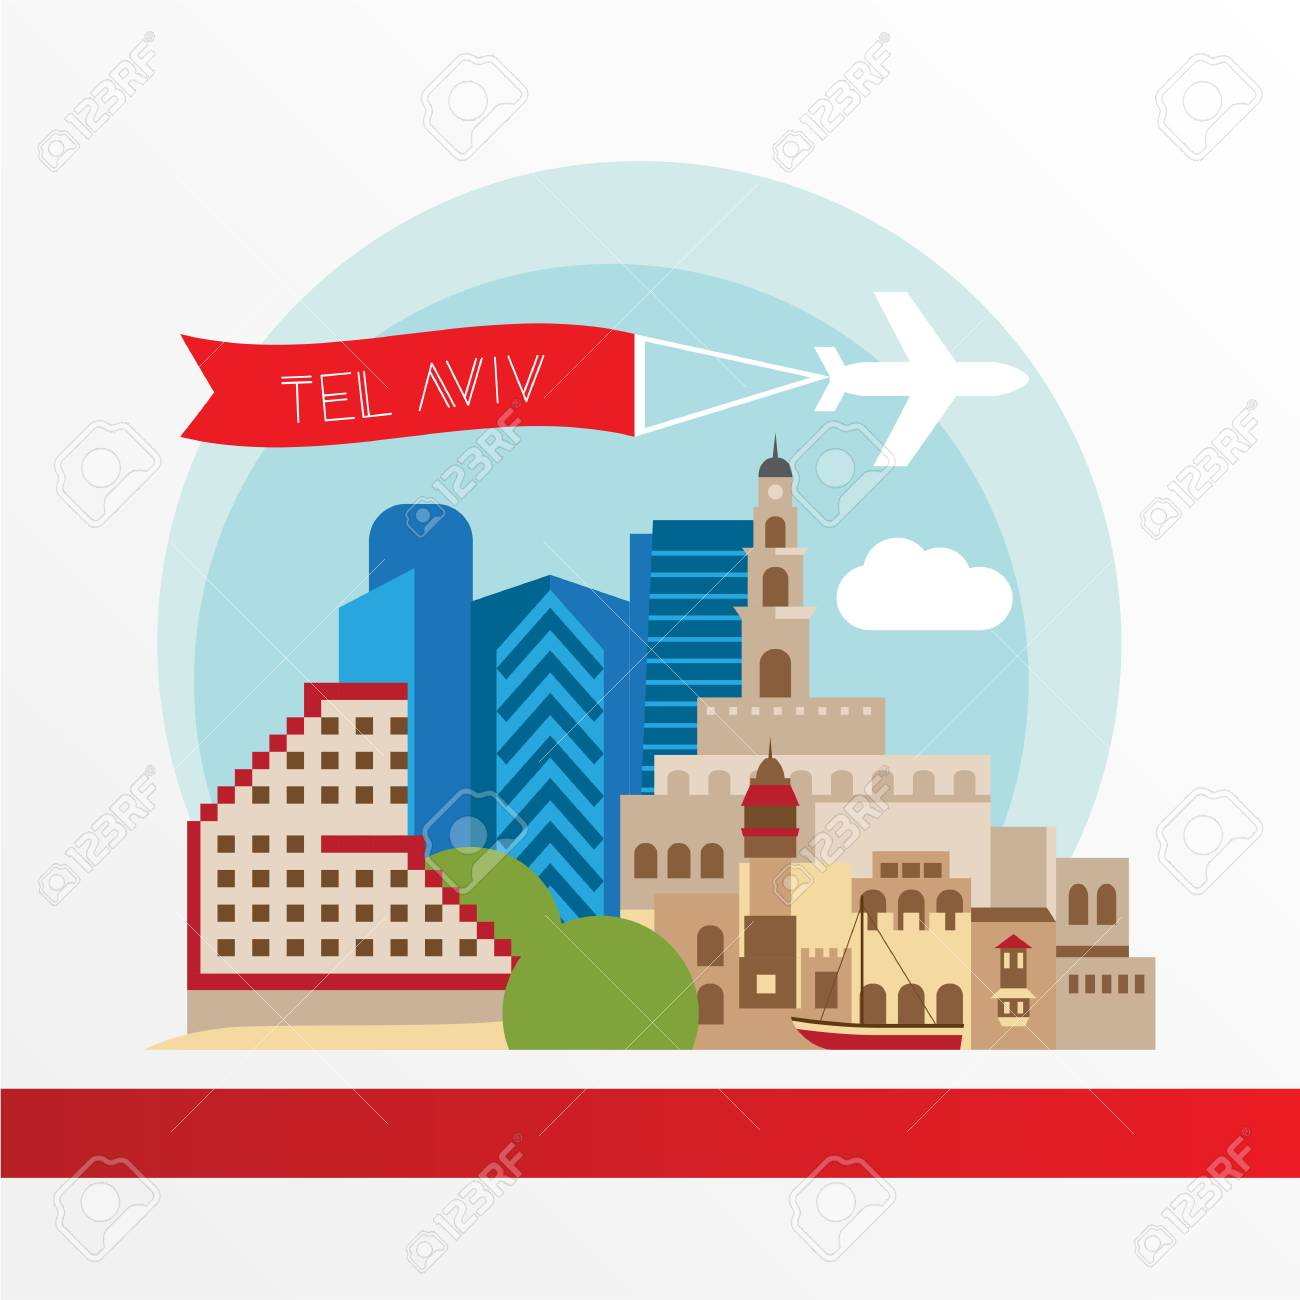 Tel Aviv, detailed silhouette. Trendy vector illustration, flat style. Stylish colorful landmarks. The concept for a web banner. Jaffa Portr - The symbol of Israel. - 114725498